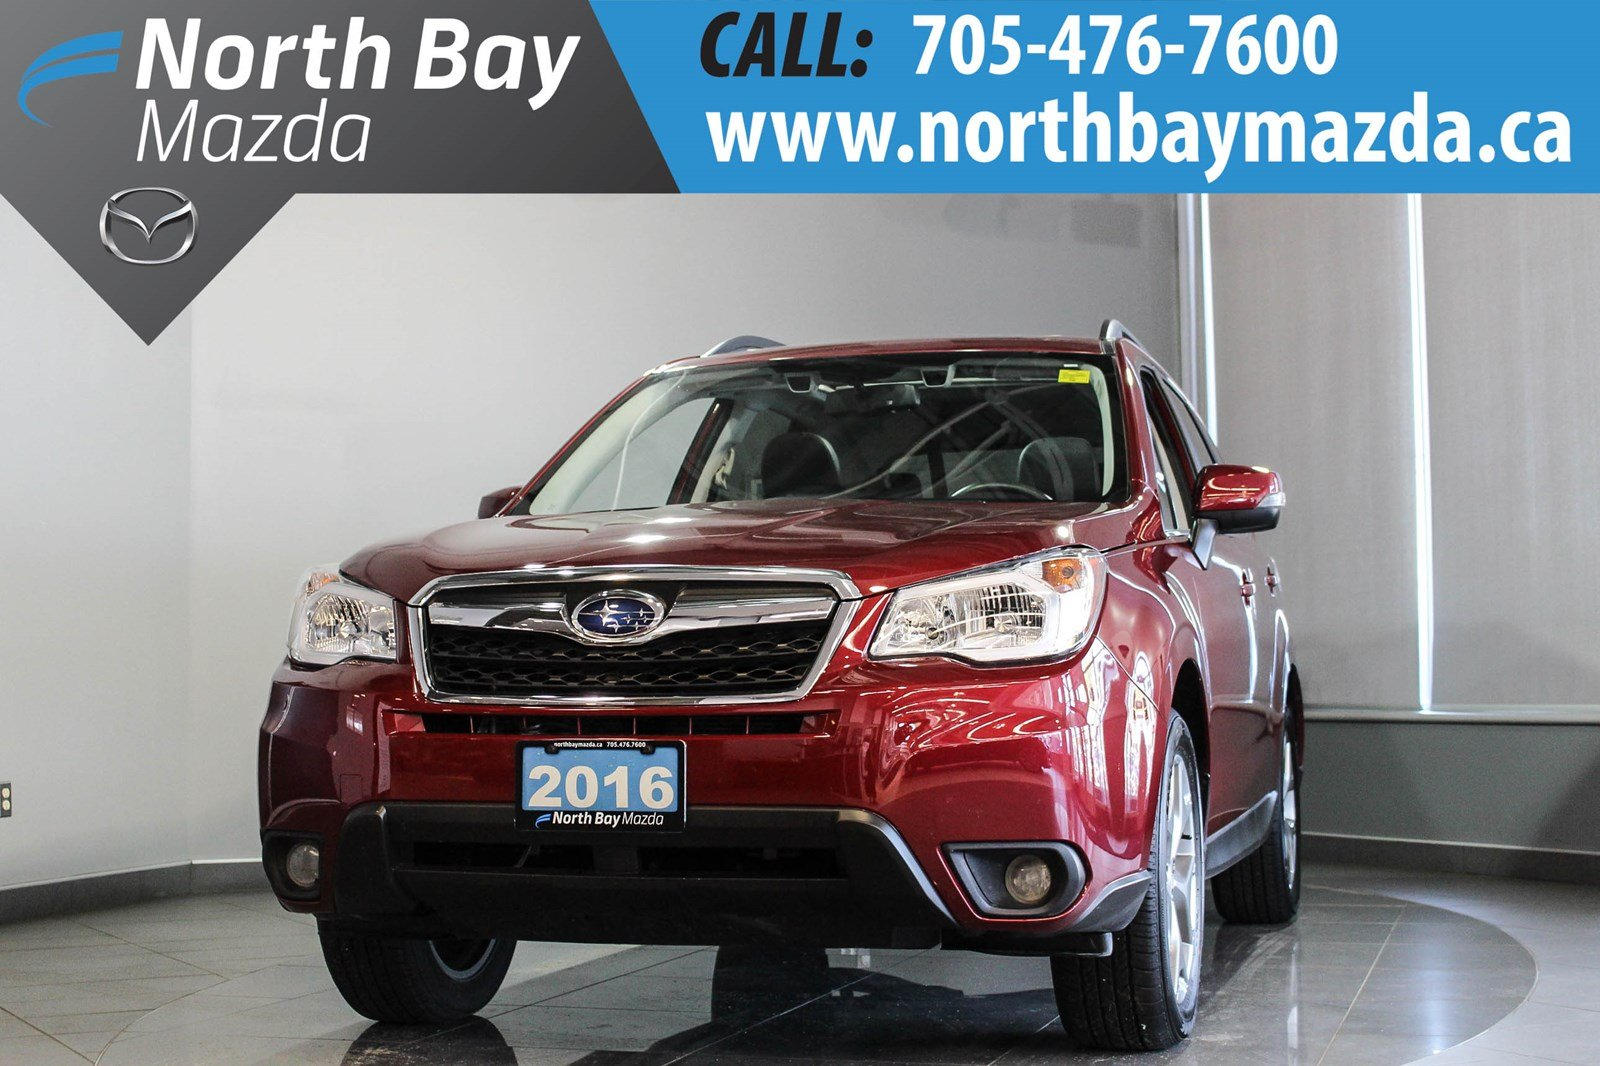 Pre-Owned 2016 Subaru Forester Limited Eyesight with Leather, Nav, Sunroof